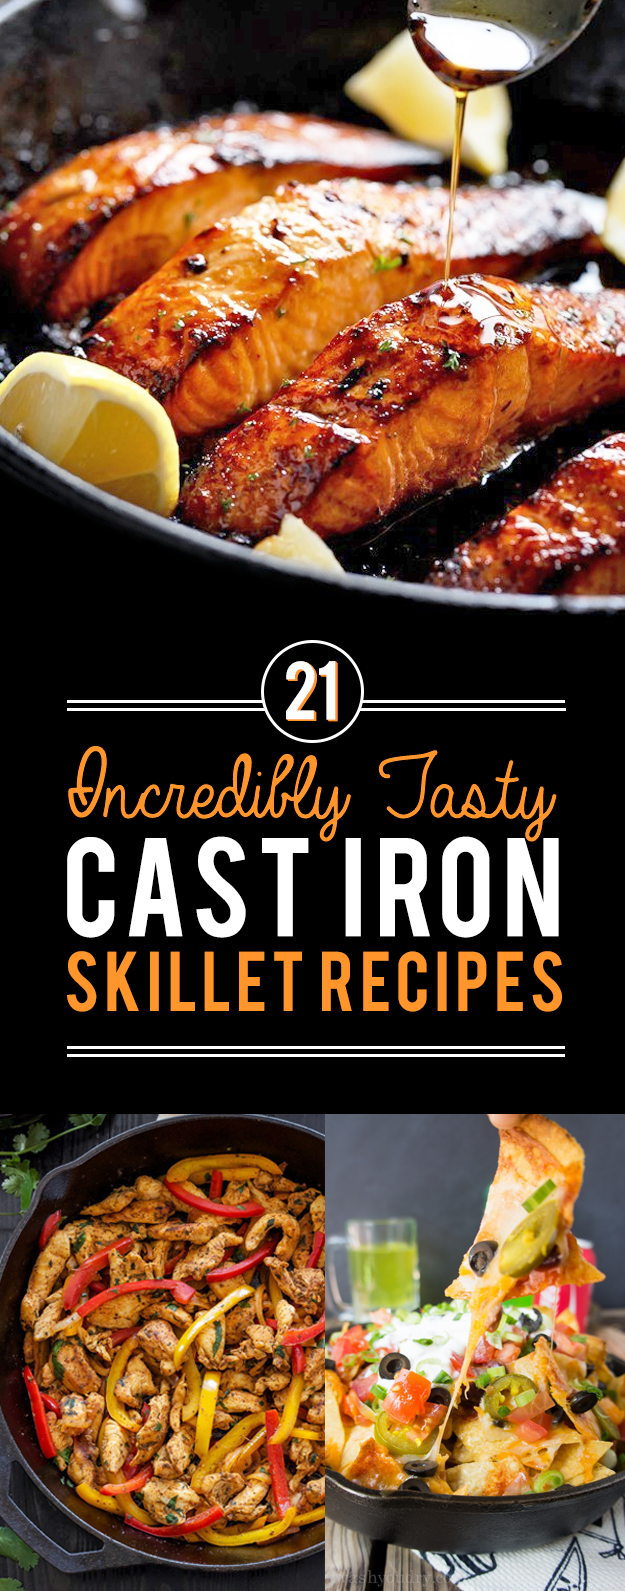 Not sure what to make? Try one of these recipes.